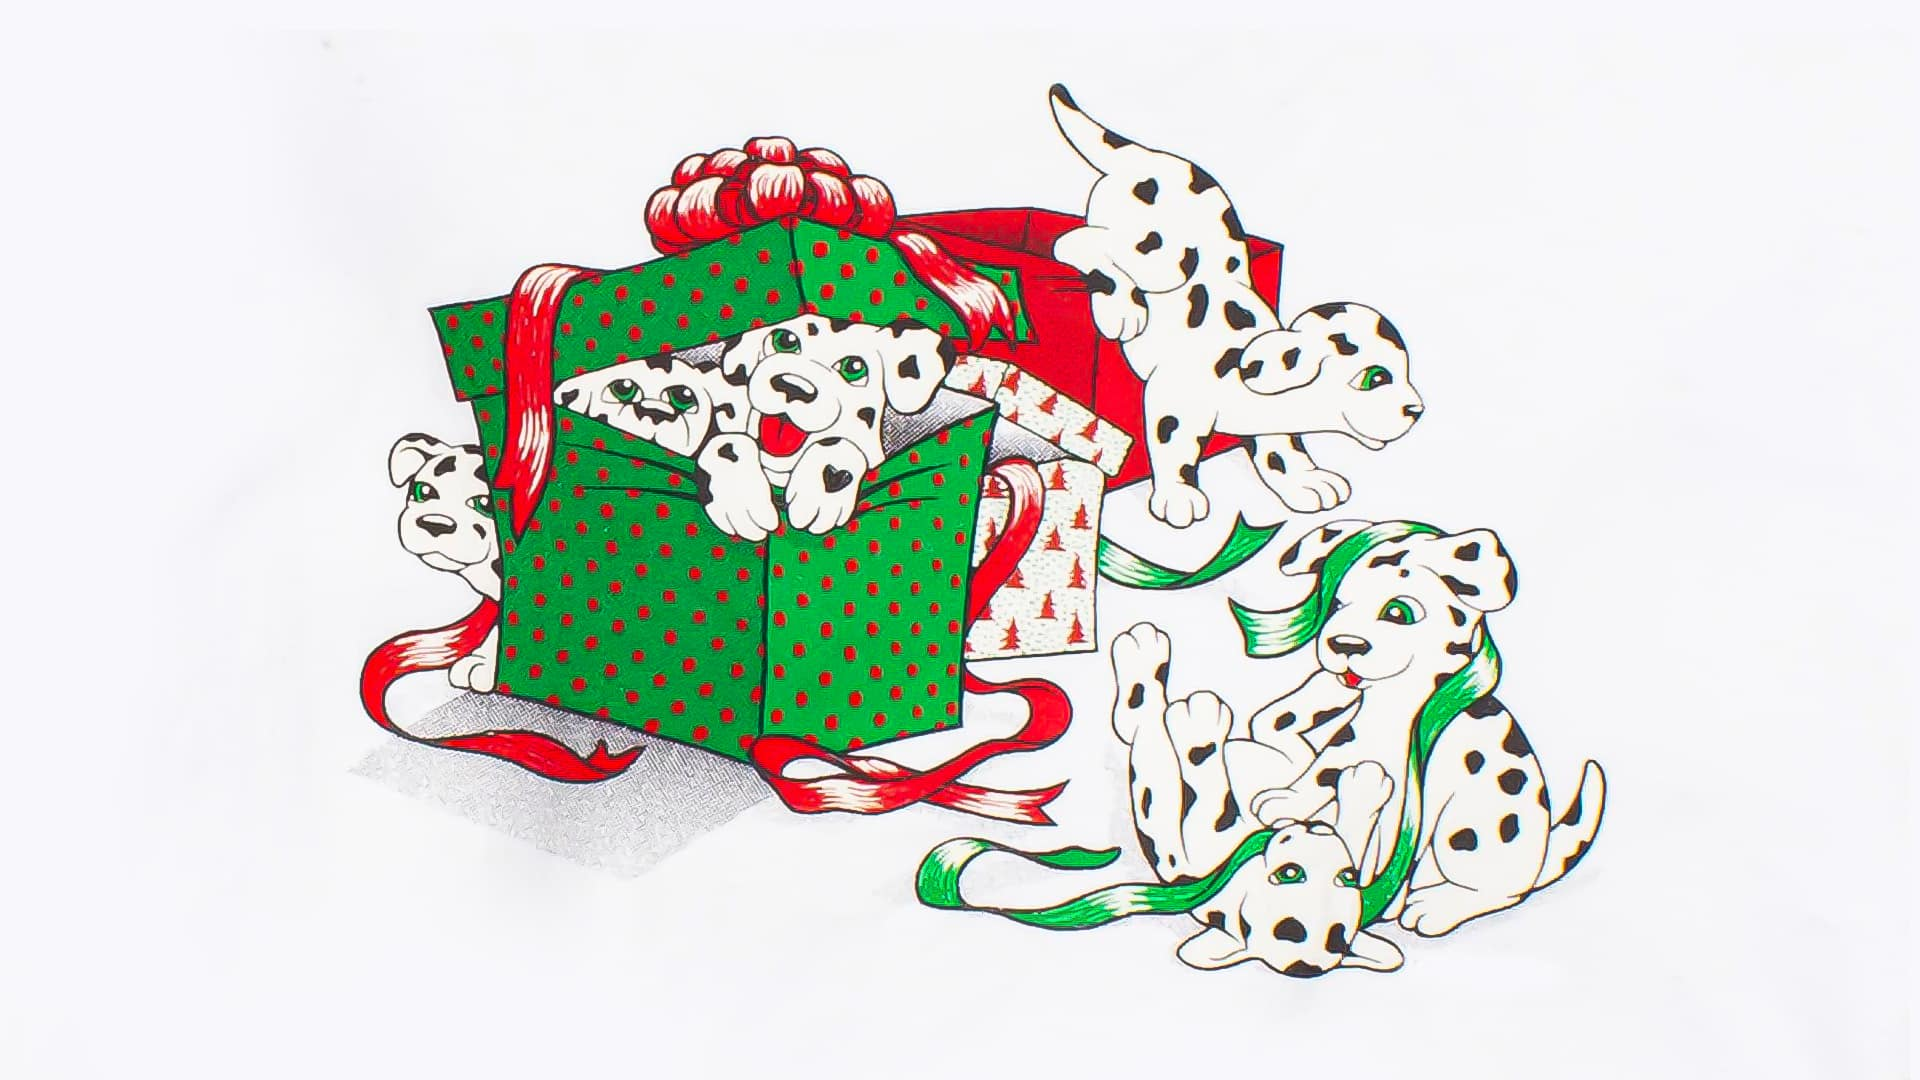 Ugly Christmas sweatshirt featuring Dalmatian dogs busting out of wrapped presents